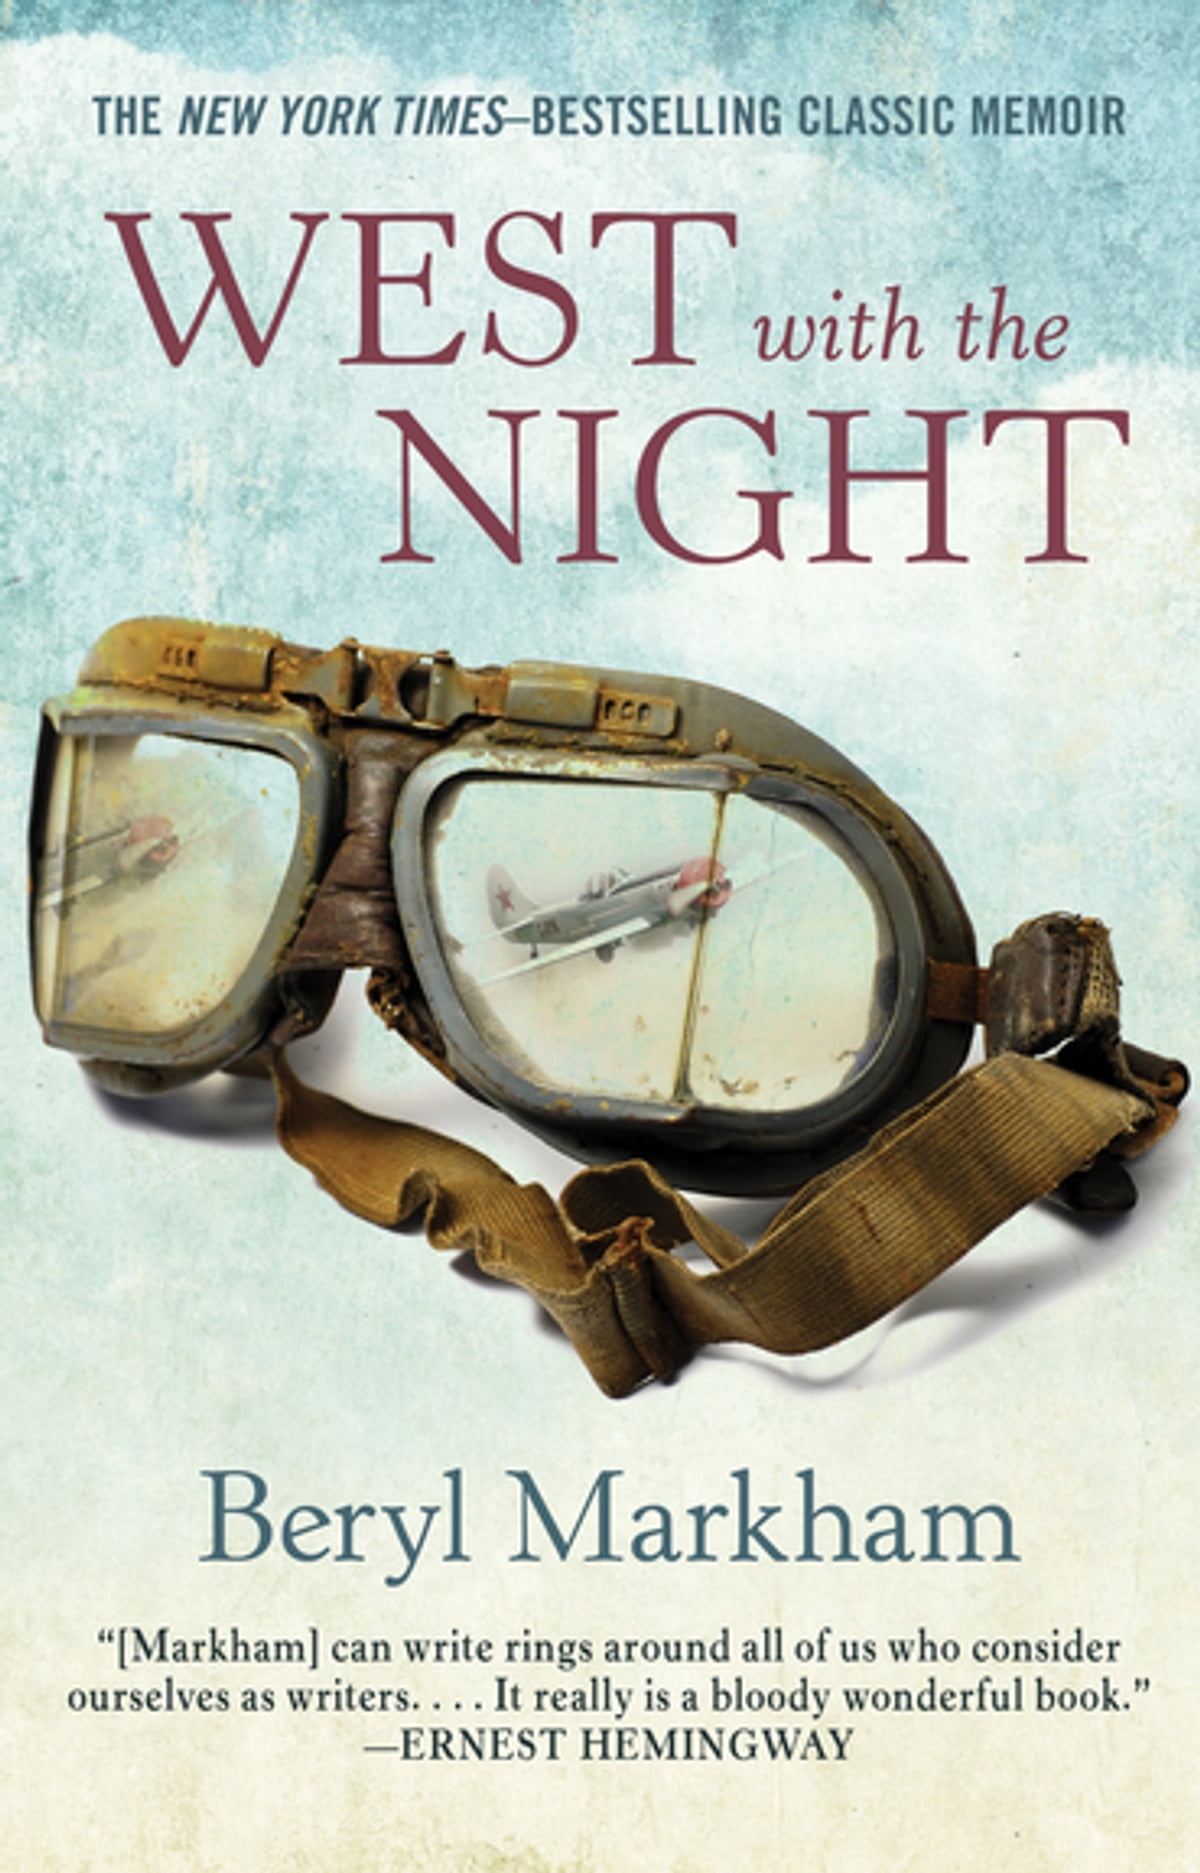 West with the Night eBook by Beryl Markham - 9781453237915 | Rakuten Kobo